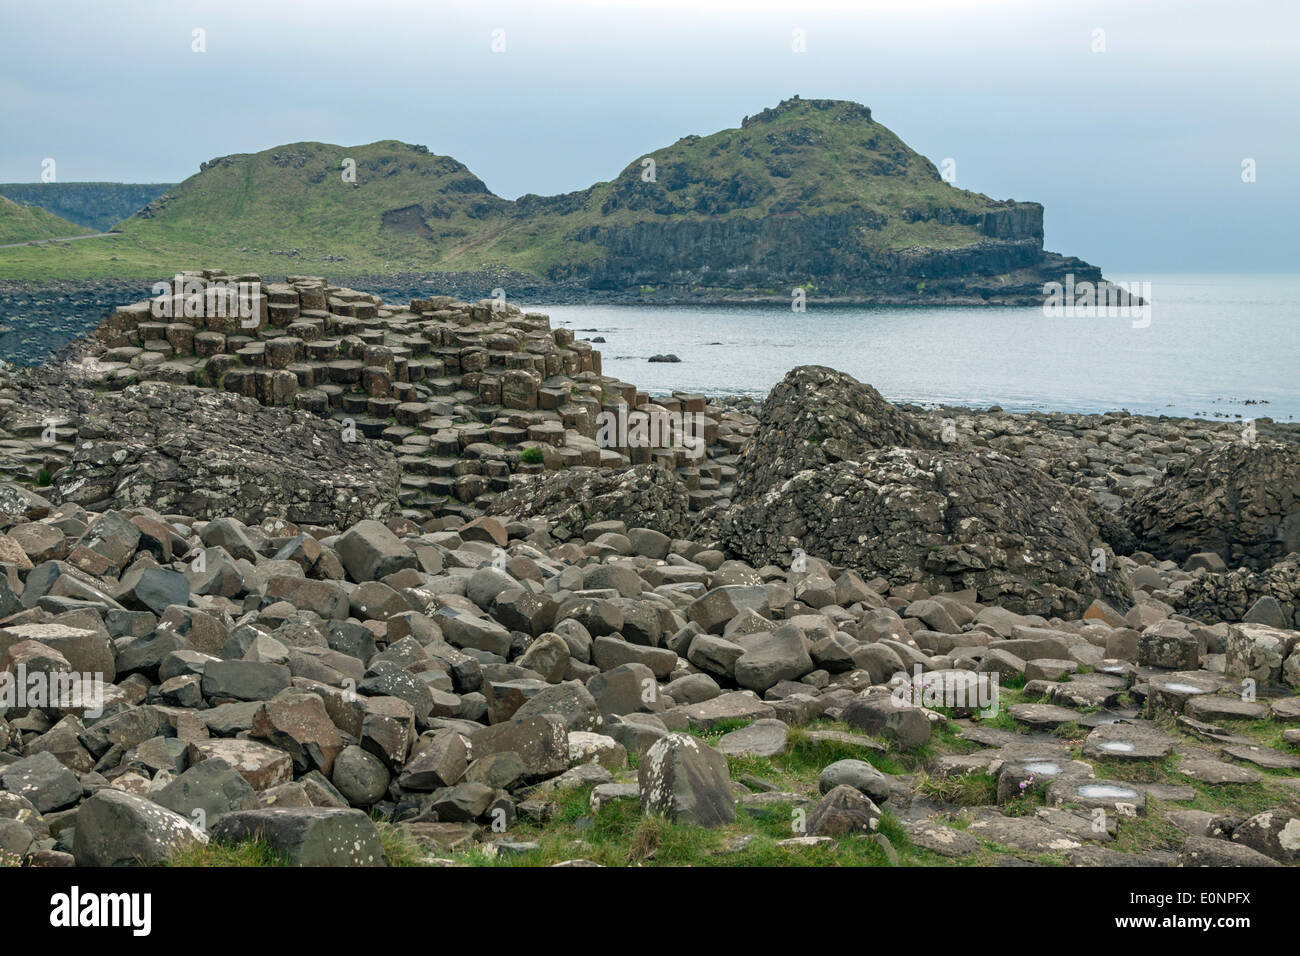 Giant's Causeway, a amous UNESCO World Heritage Site, situated on the Antrim coast of Northern Ireland, United Kingdom. - Stock Image